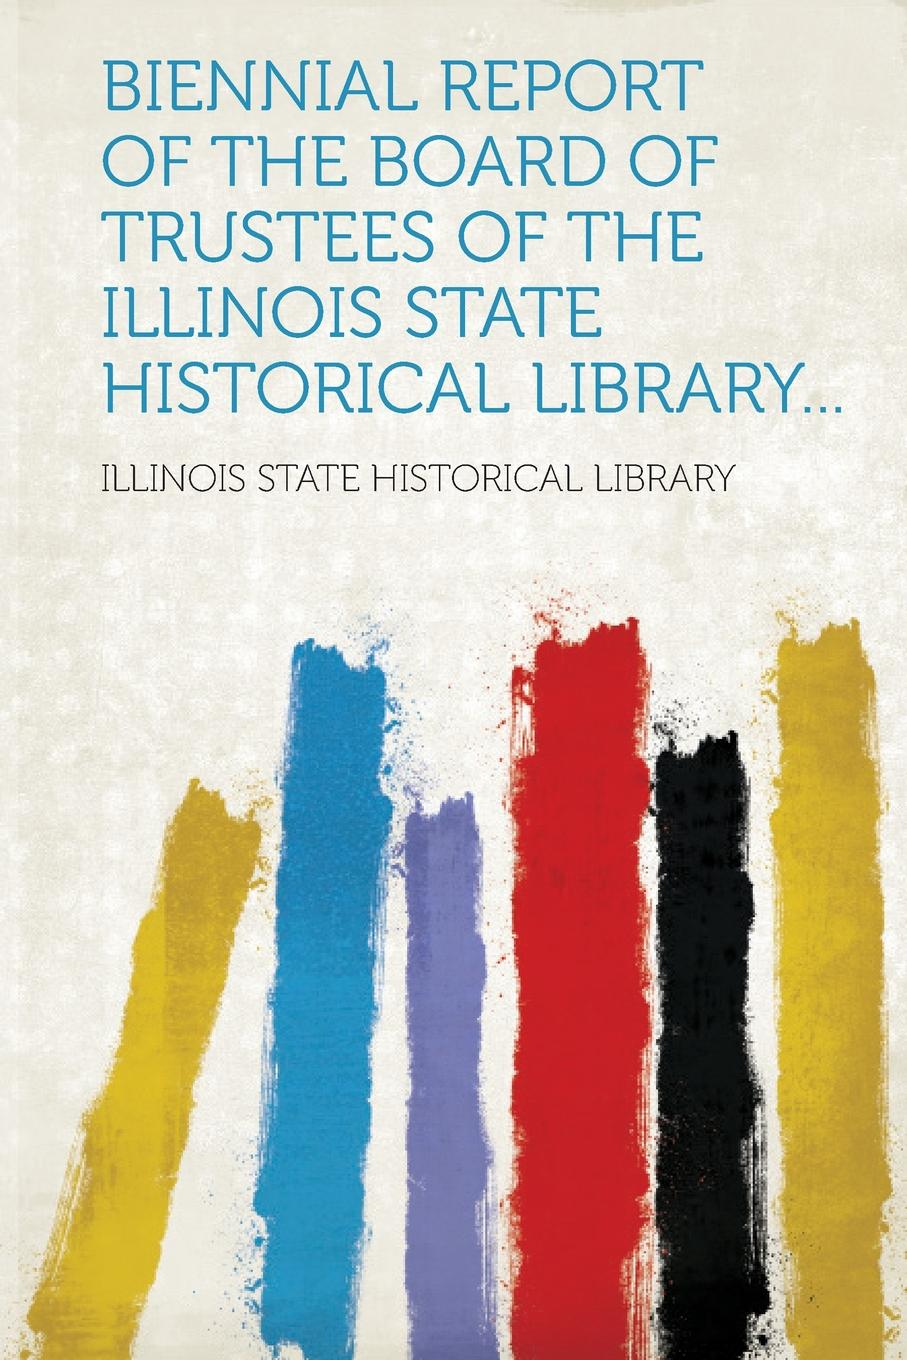 Biennial Report of the Board of Trustees of the Illinois State Historical Library...